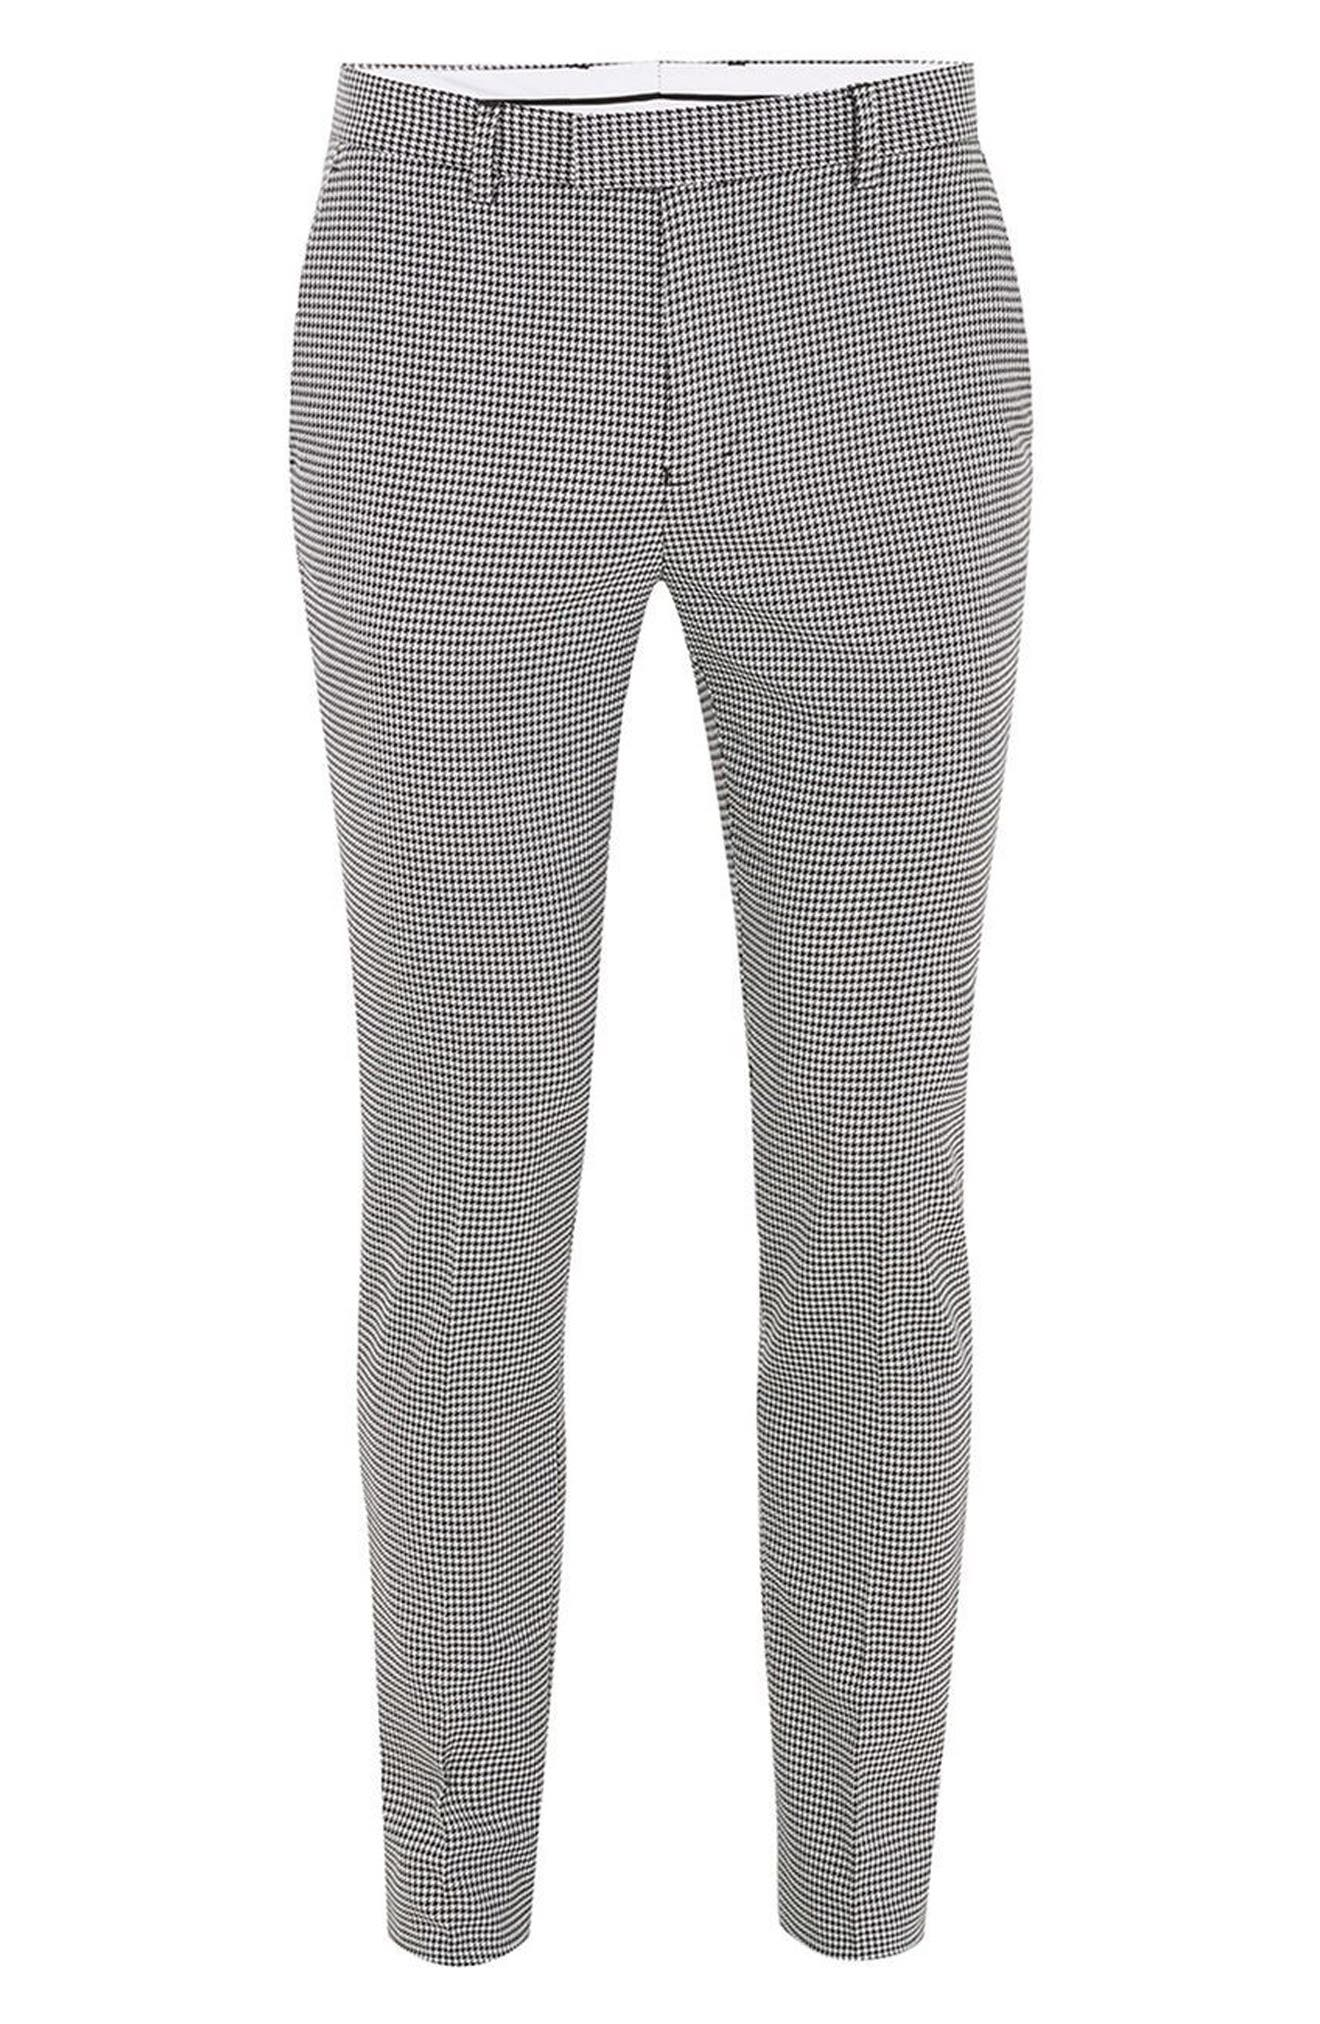 Ultra Skinny Fit Houndstooth Suit Trousers,                             Alternate thumbnail 5, color,                             Black Multi